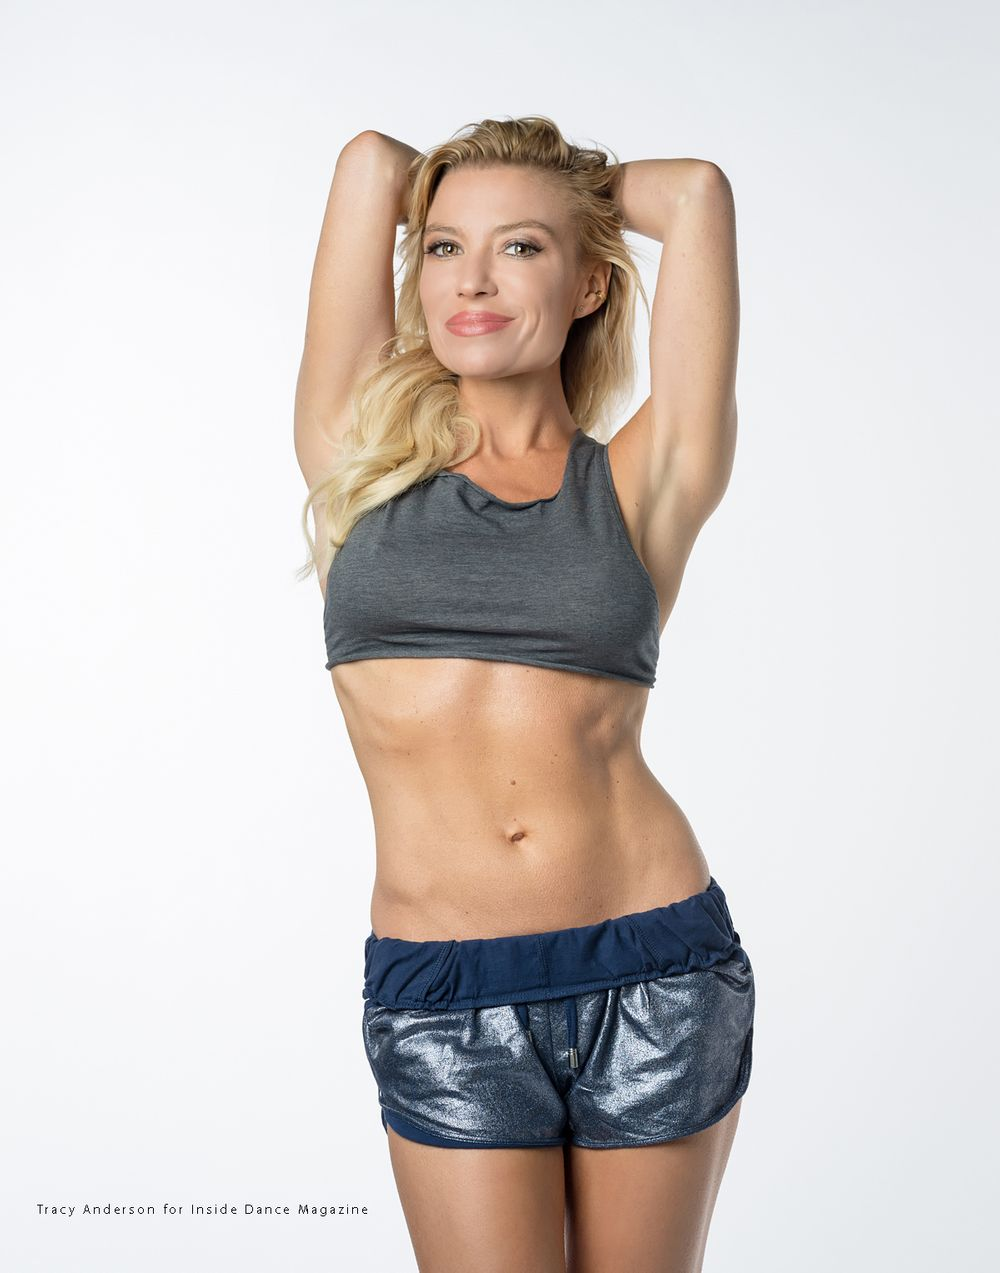 Tracy Anderson For Inside Dance Magazine